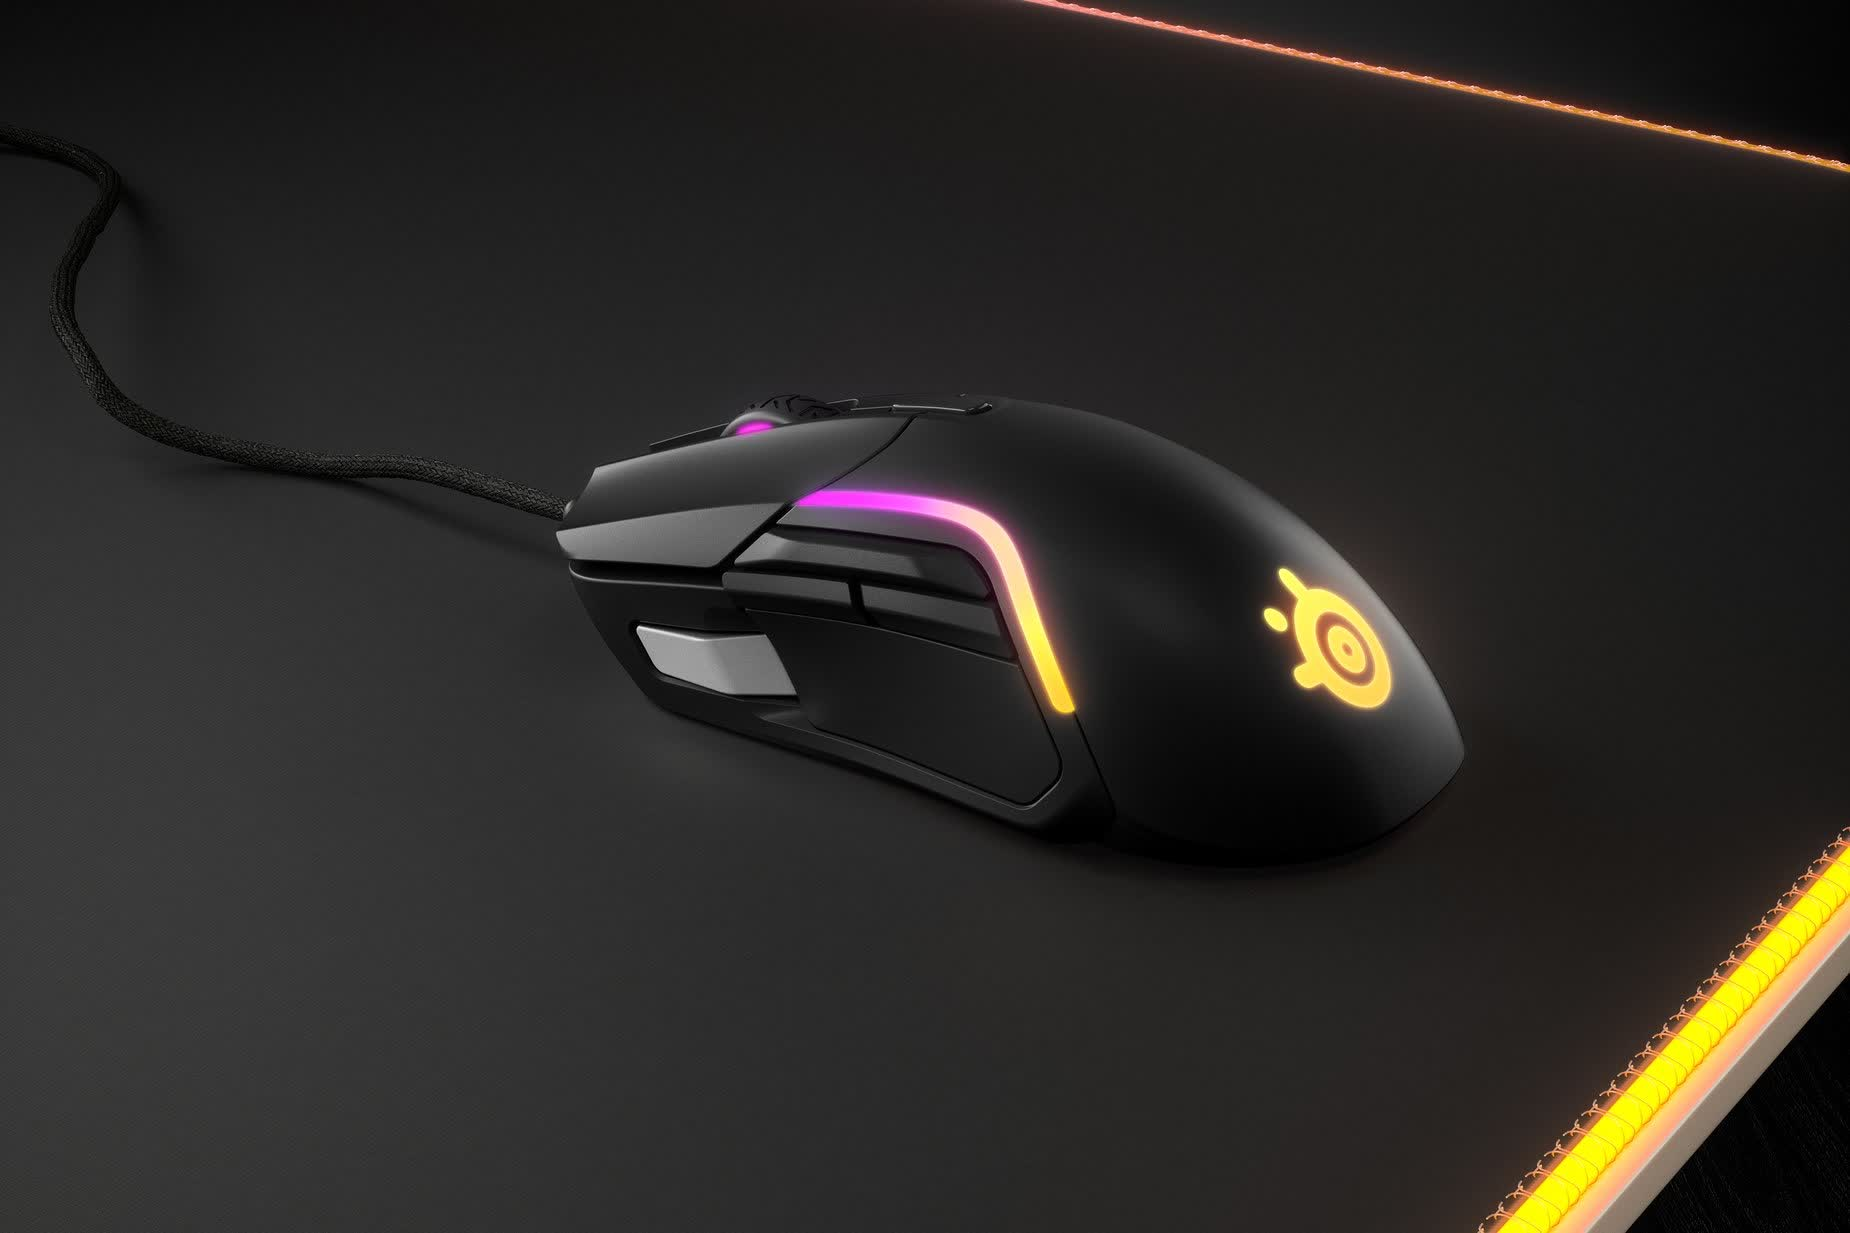 SteelSeries announces jack-of-all-trades gaming mouse, the Rival 5